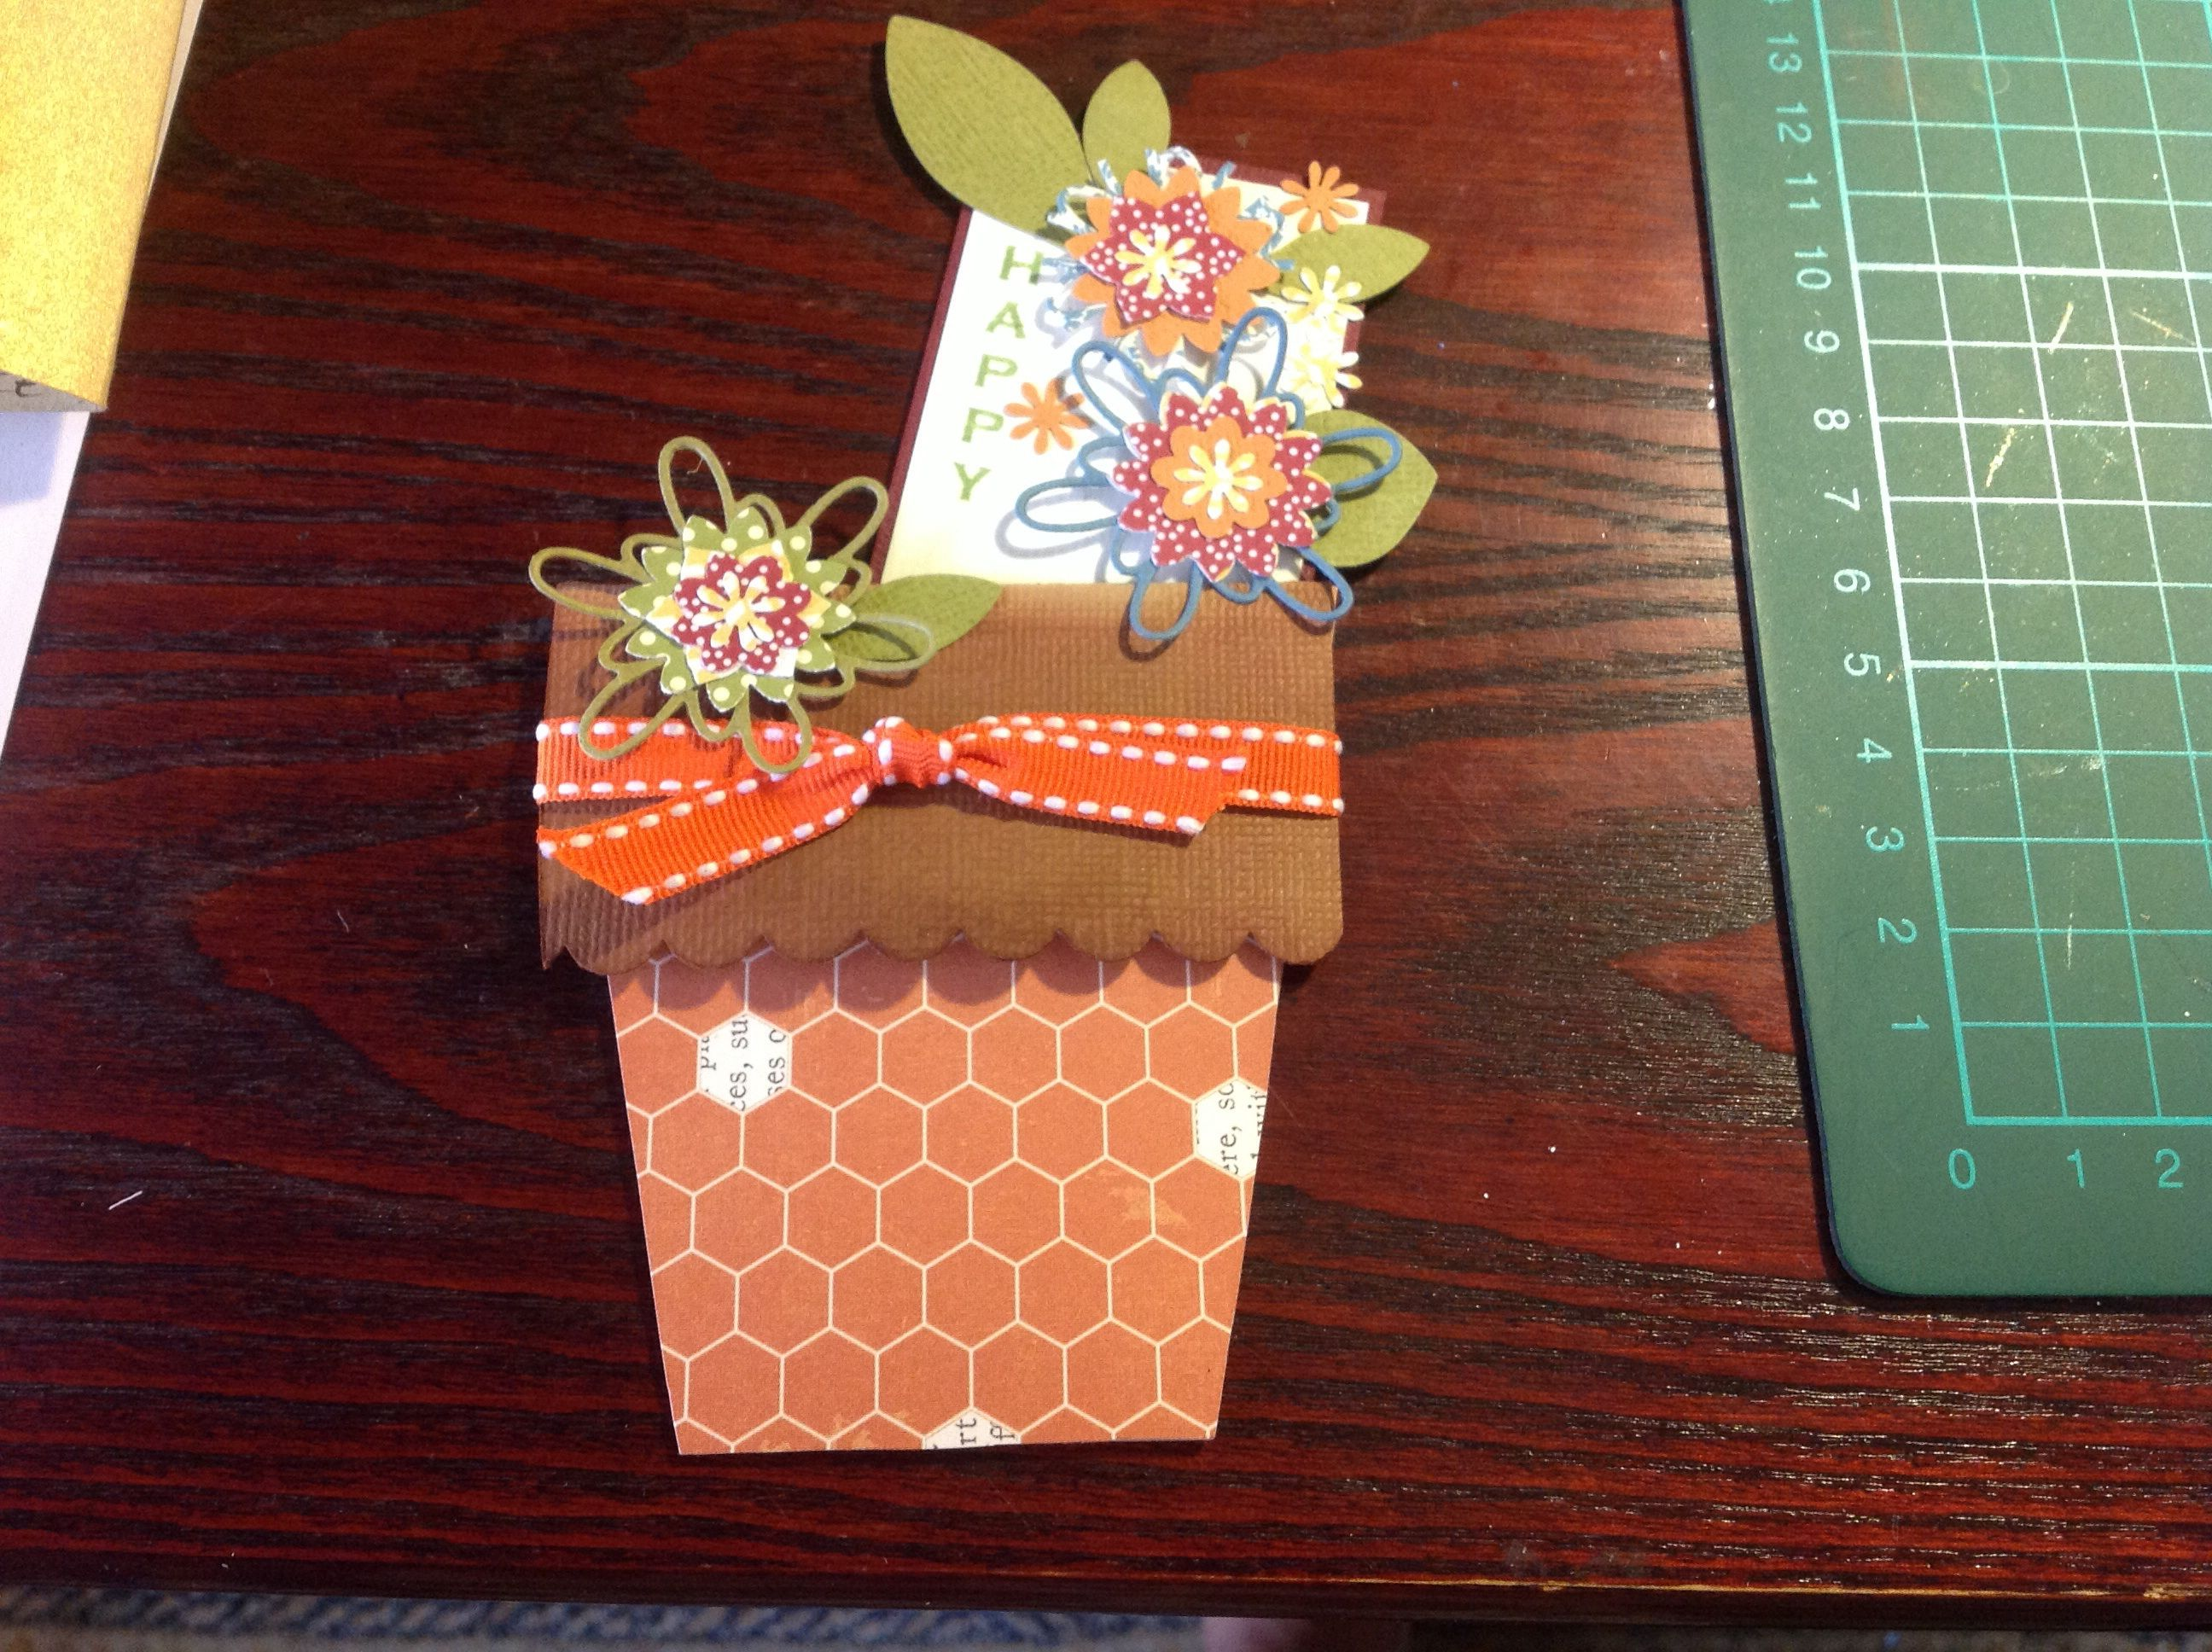 Another flowerpot card